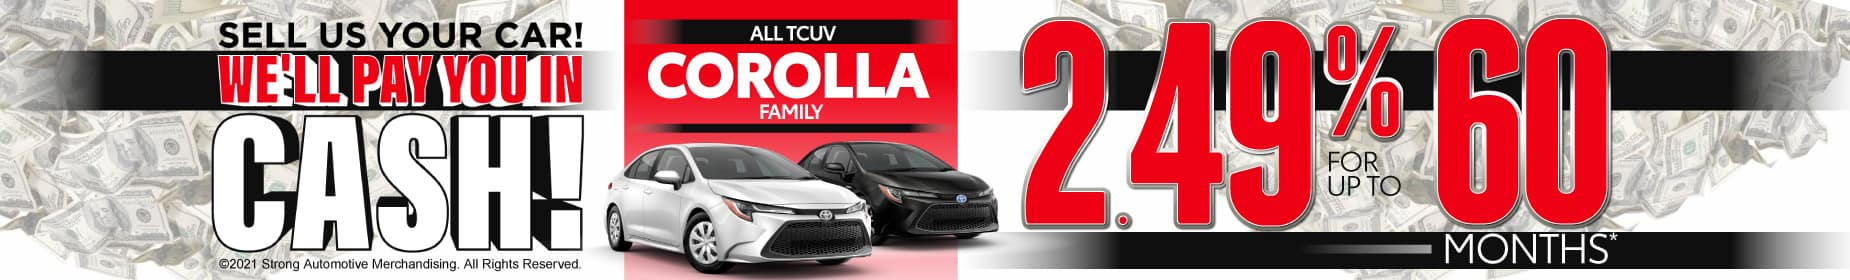 All TCUV Corollas 2.49% for 60 months